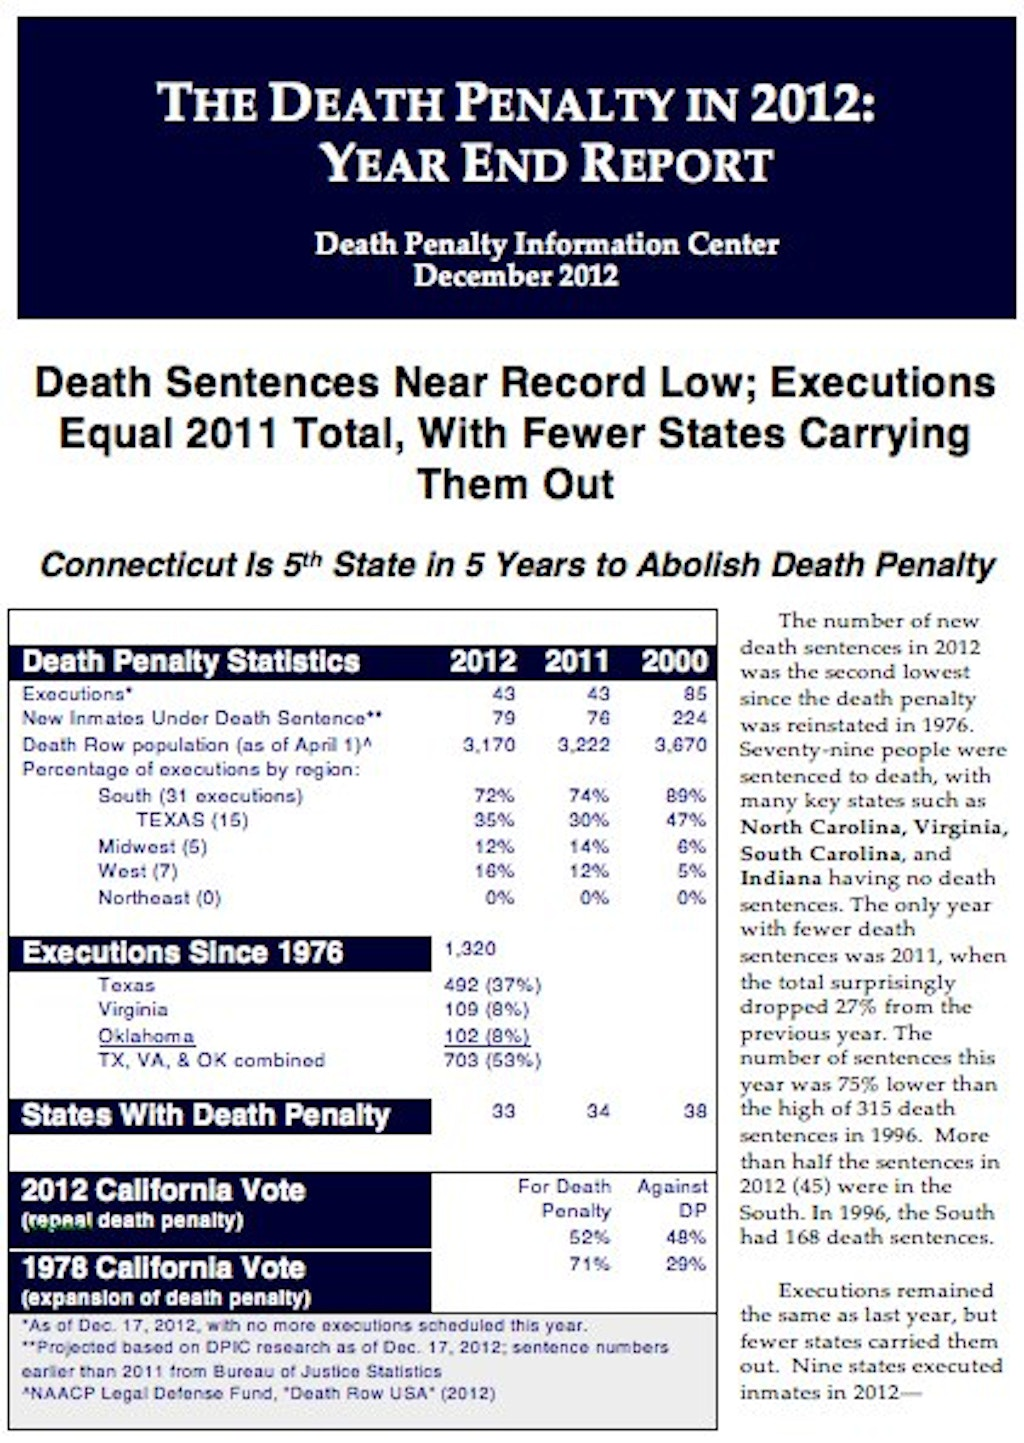 DPIC's Year End Report: Death Sentences Remain Near Historic Low